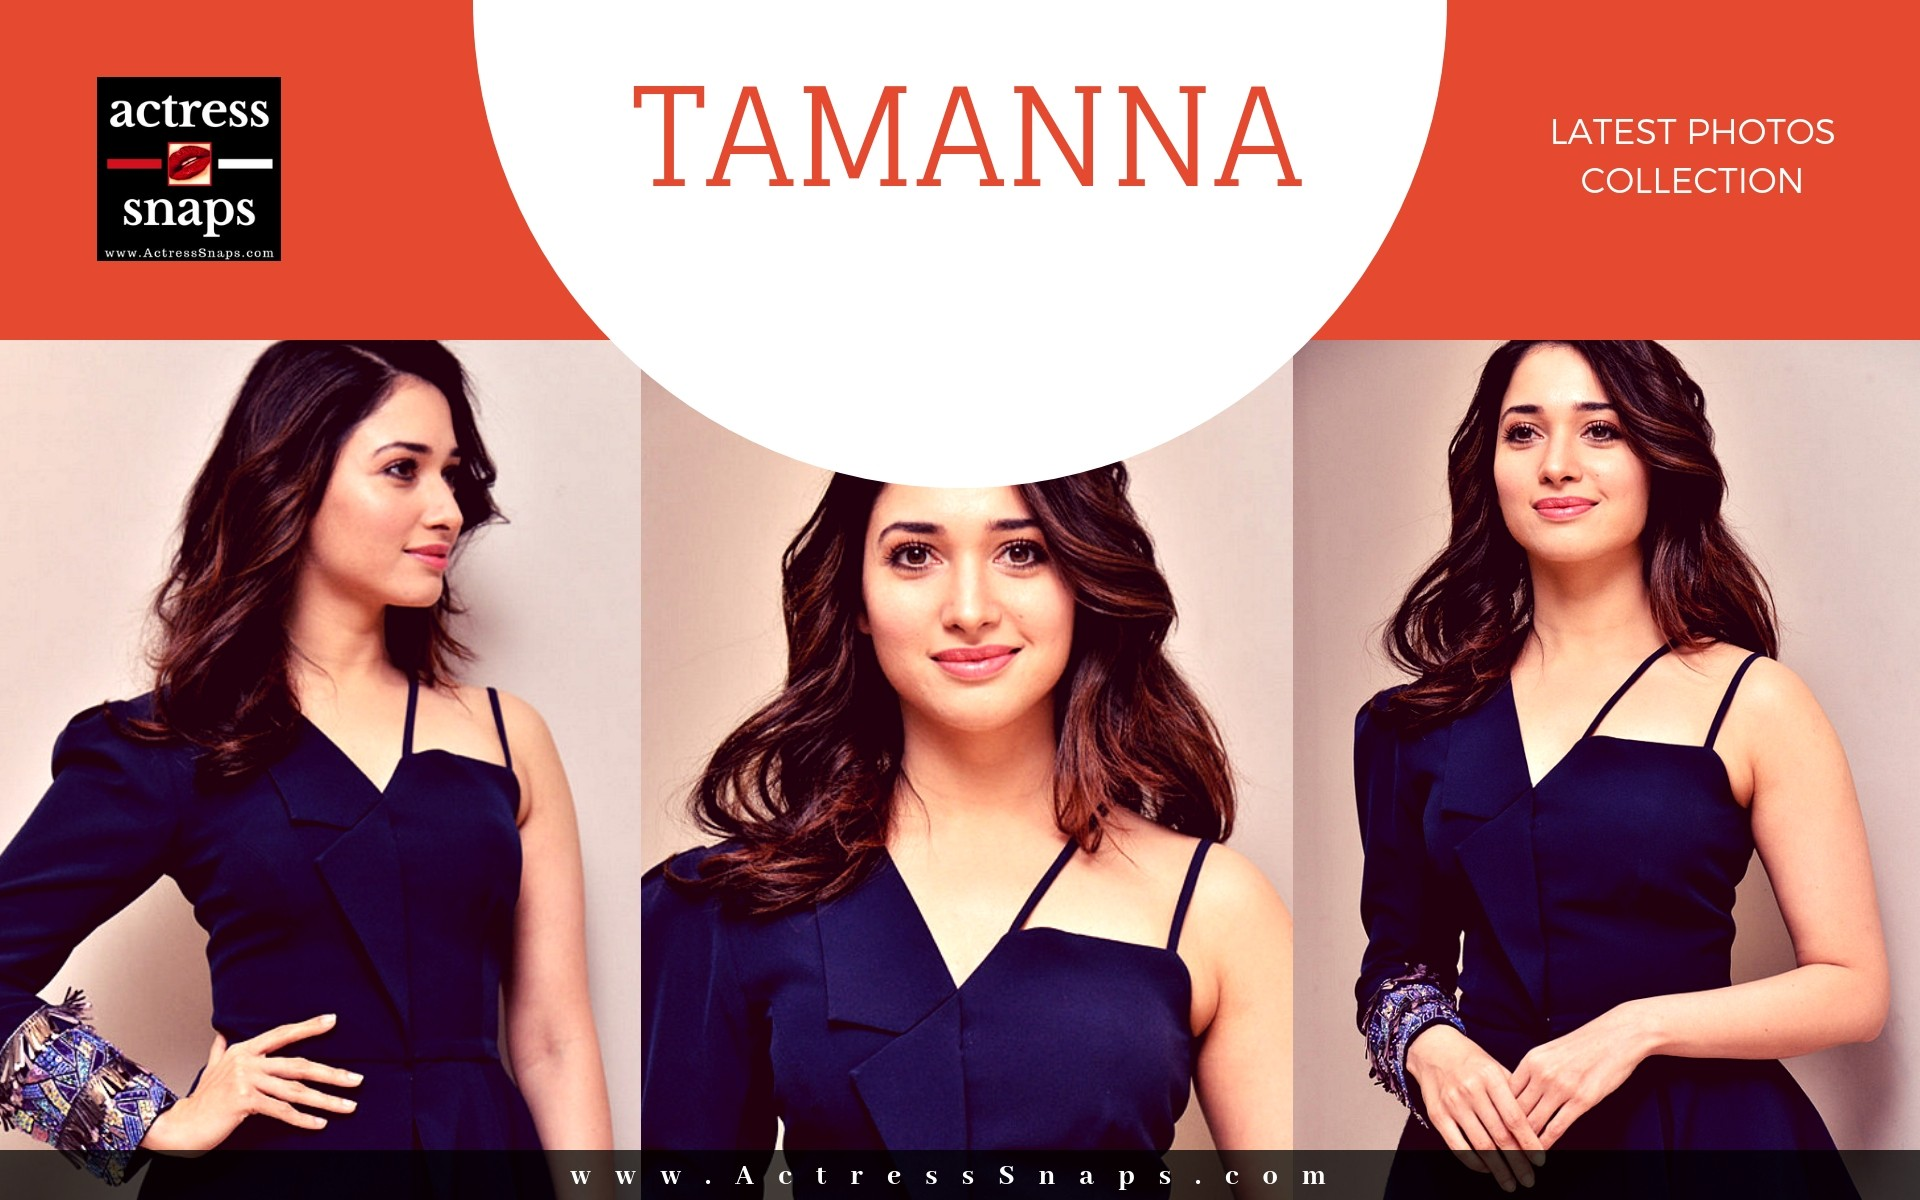 Latest Tamanna Photos - Sexy Actress Pictures | Hot Actress Pictures - ActressSnaps.com